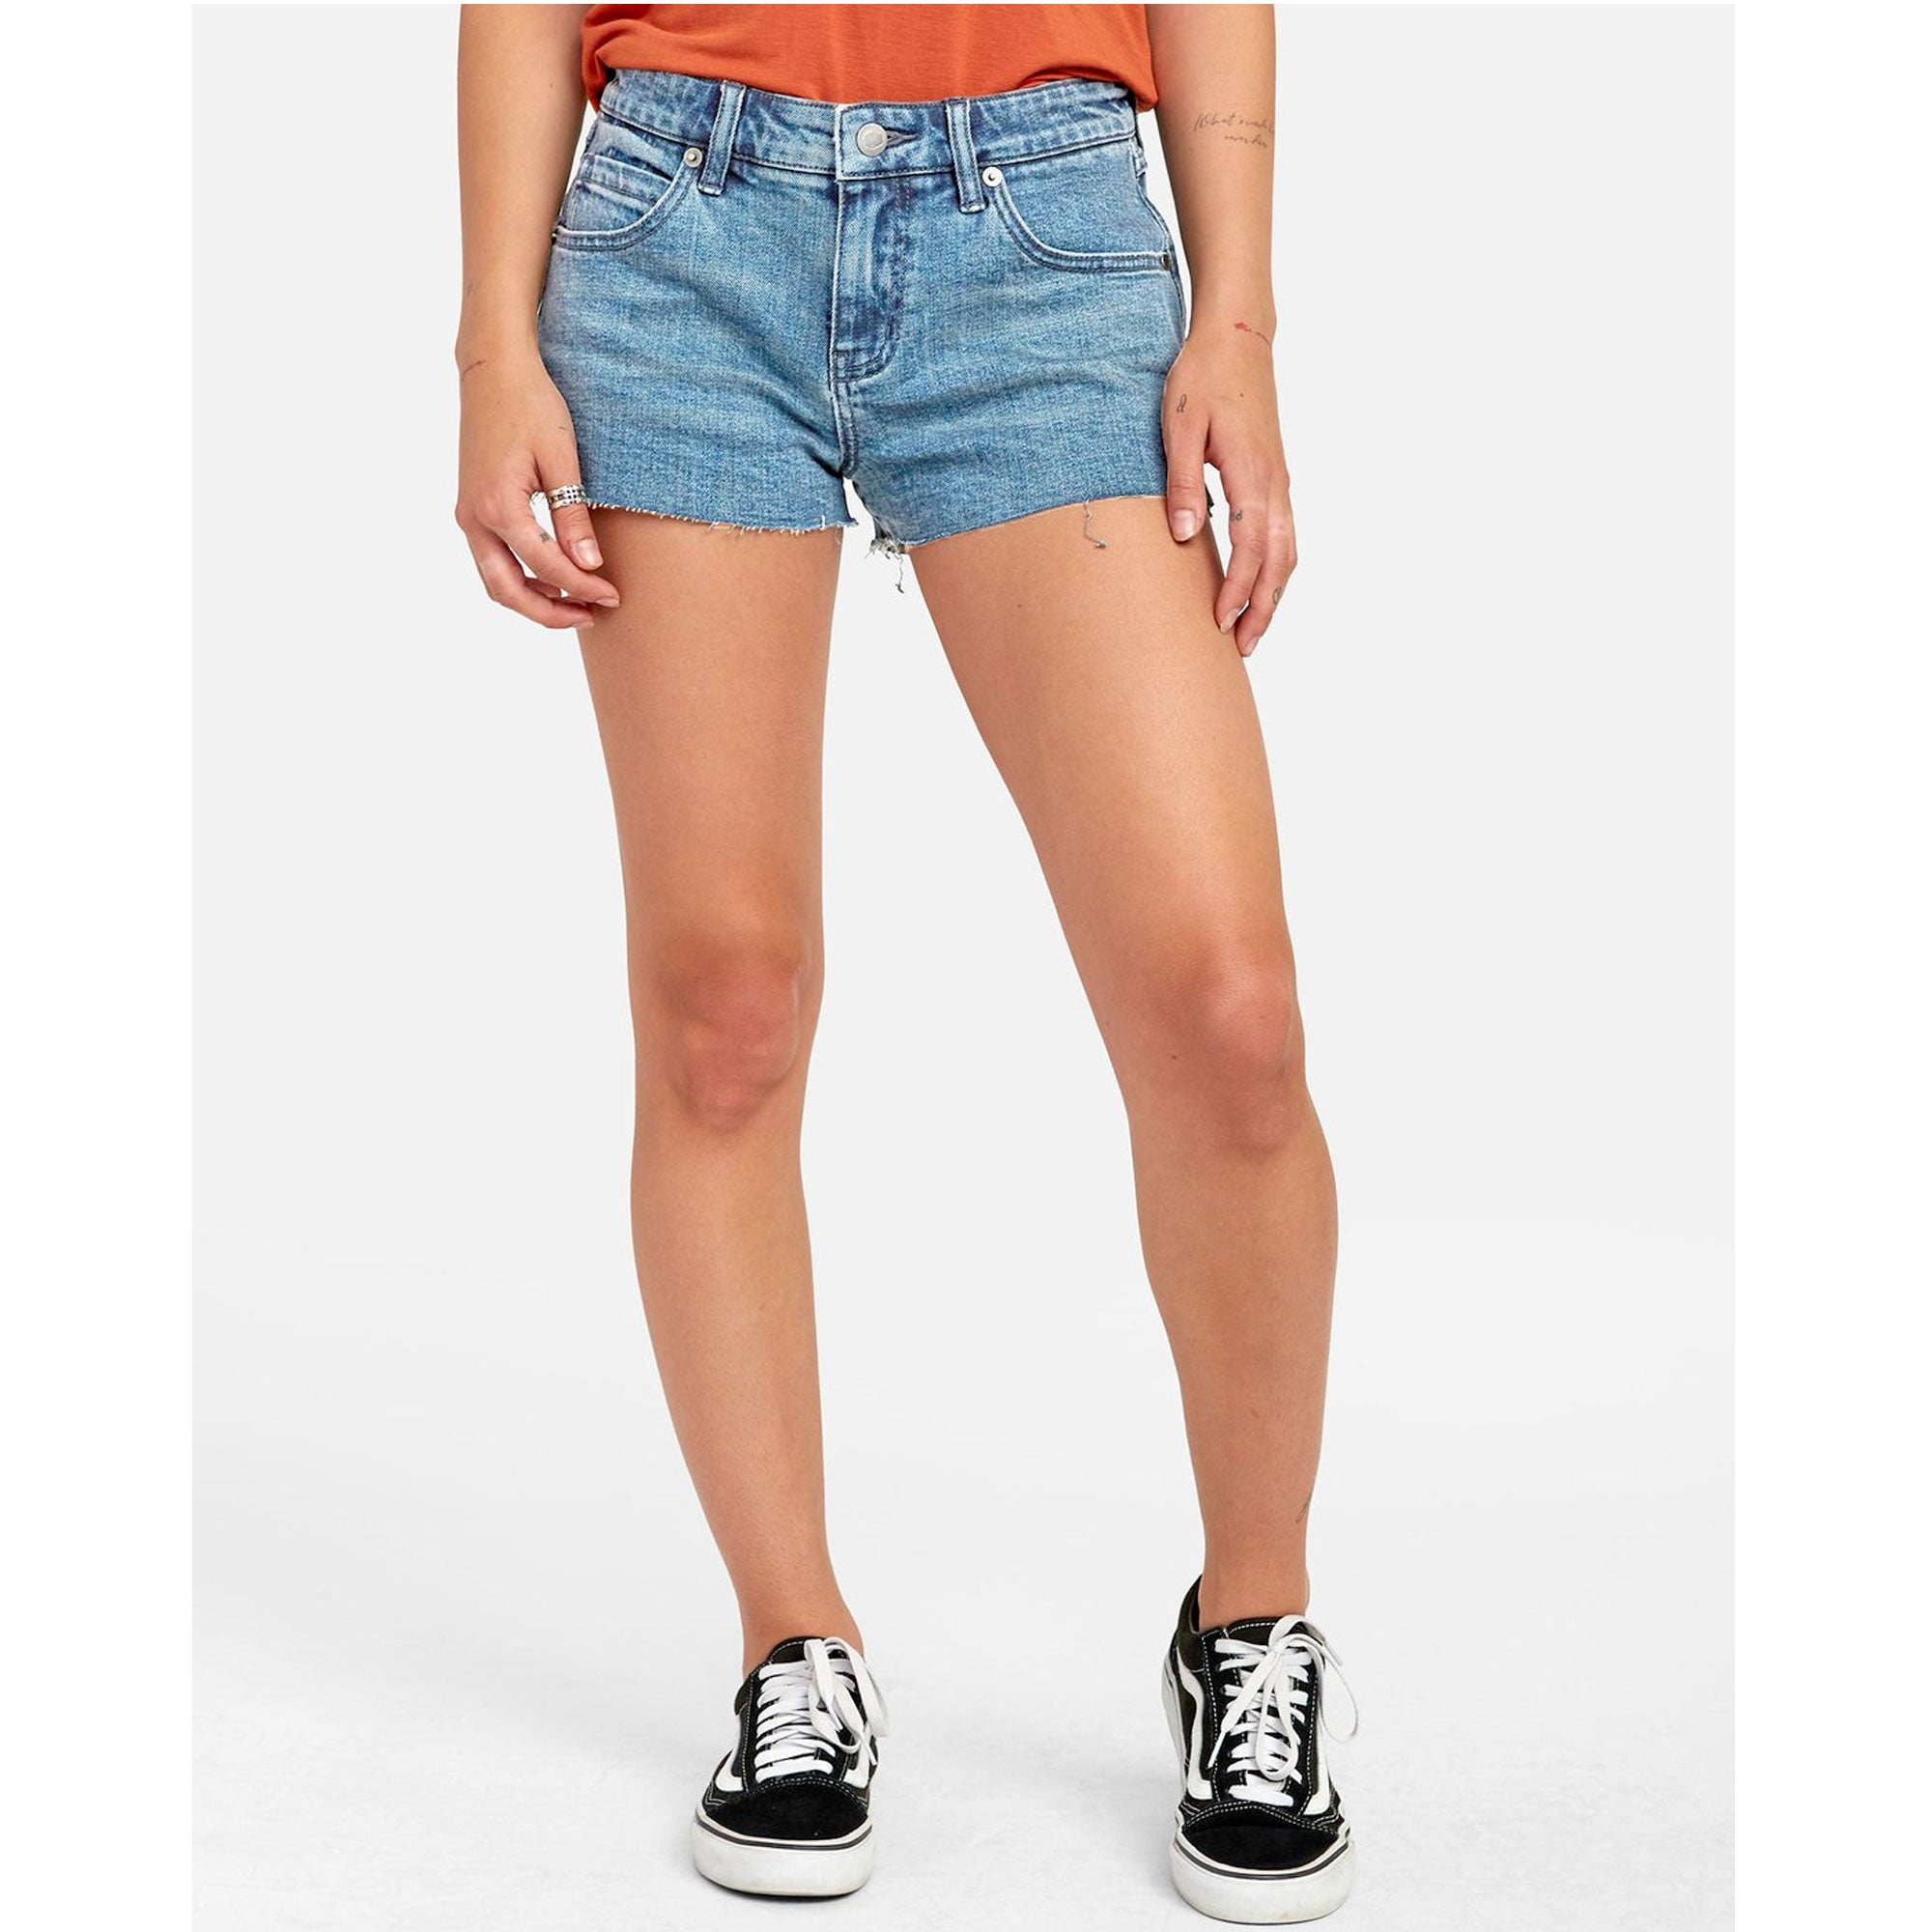 RVCA Cupid 2 Women's Denim Shorts